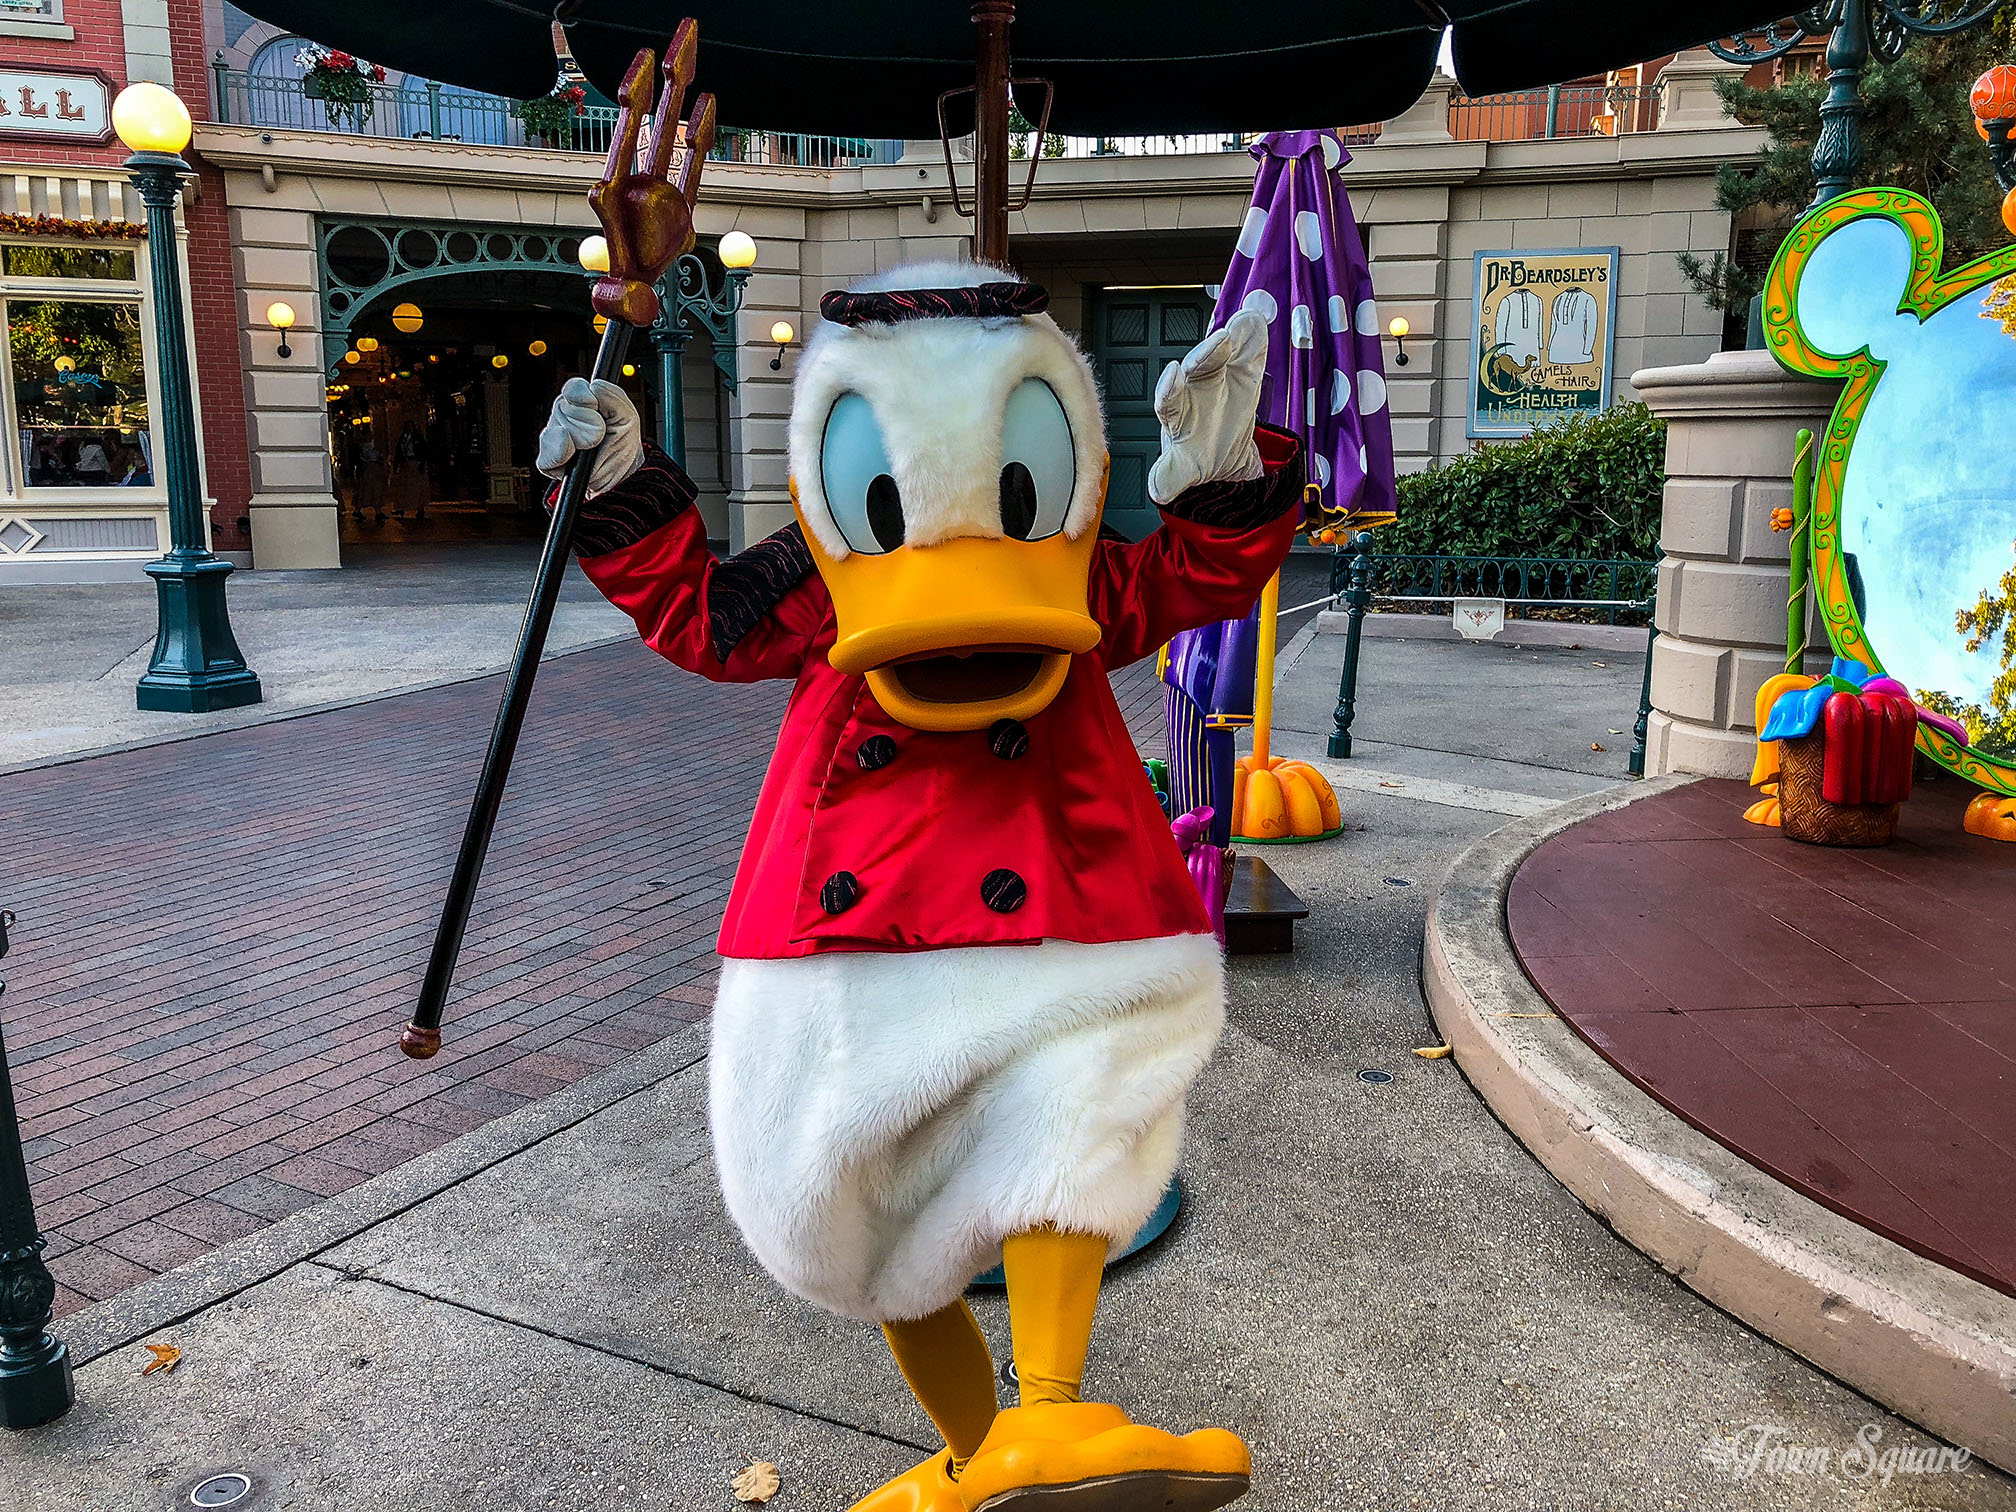 Donald Duck dressed as a Devil during the 2018 Halloween season at Disneyland Paris